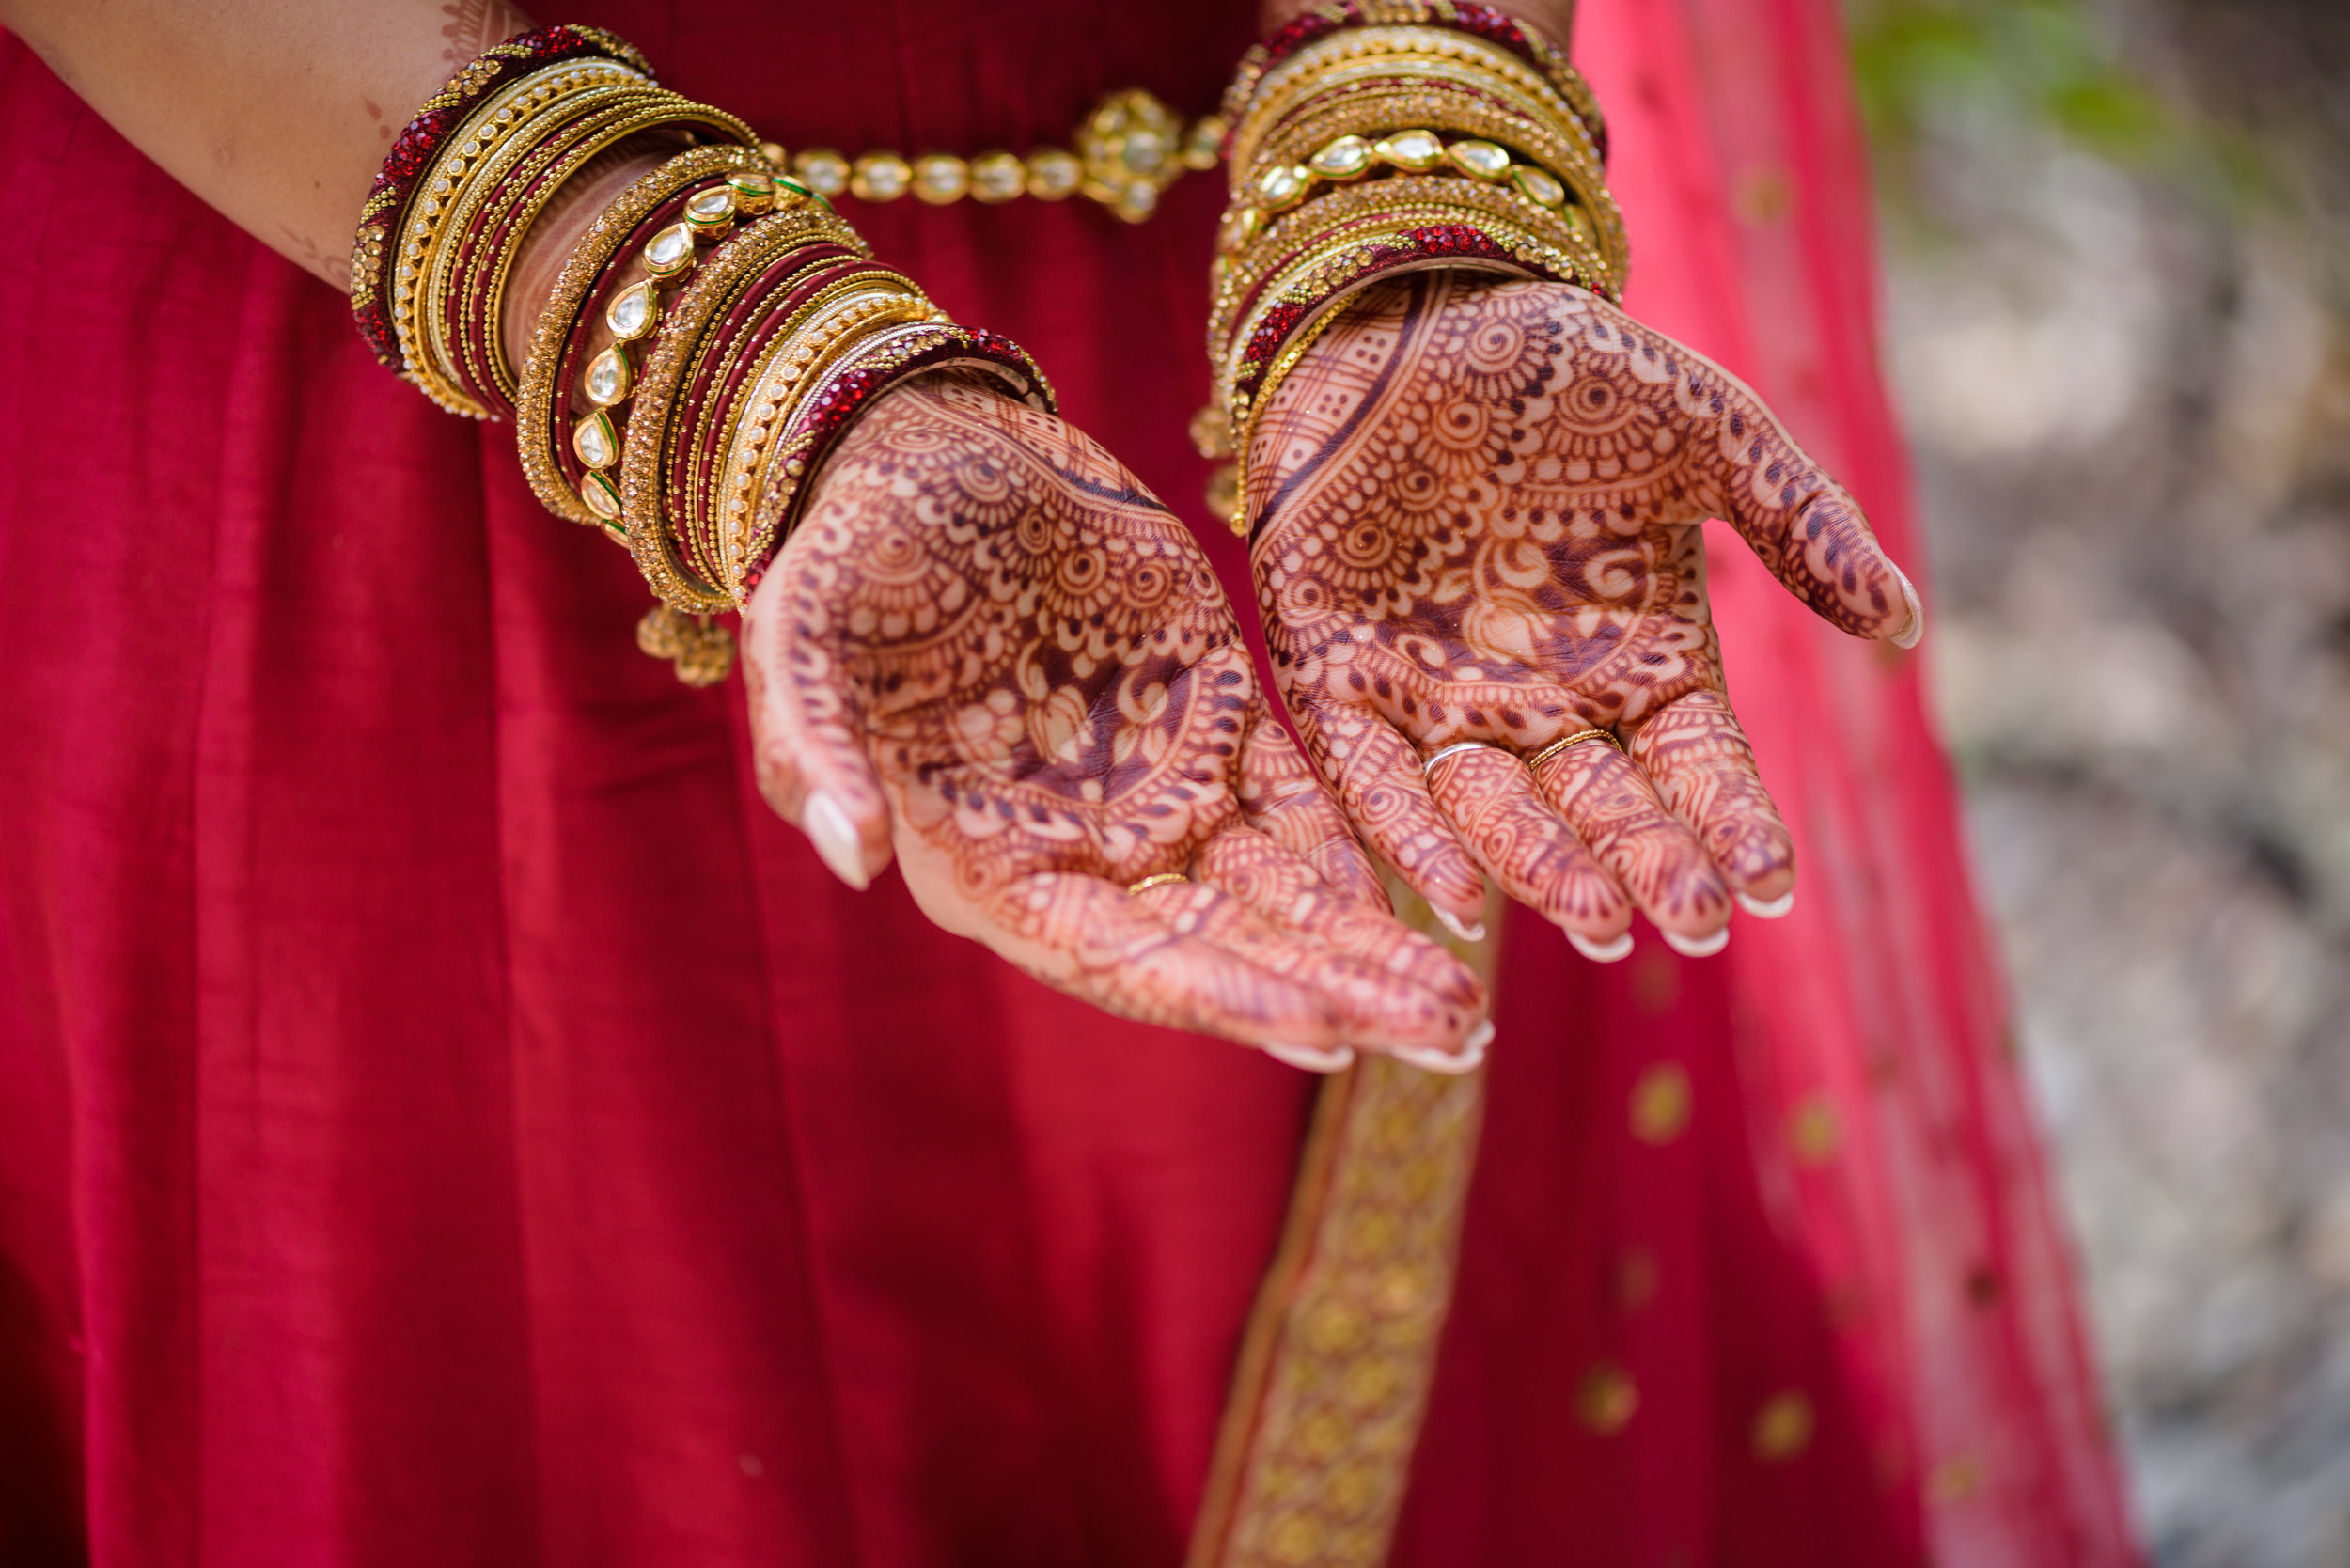 CL Indian Wedding Henna Hands.jpg